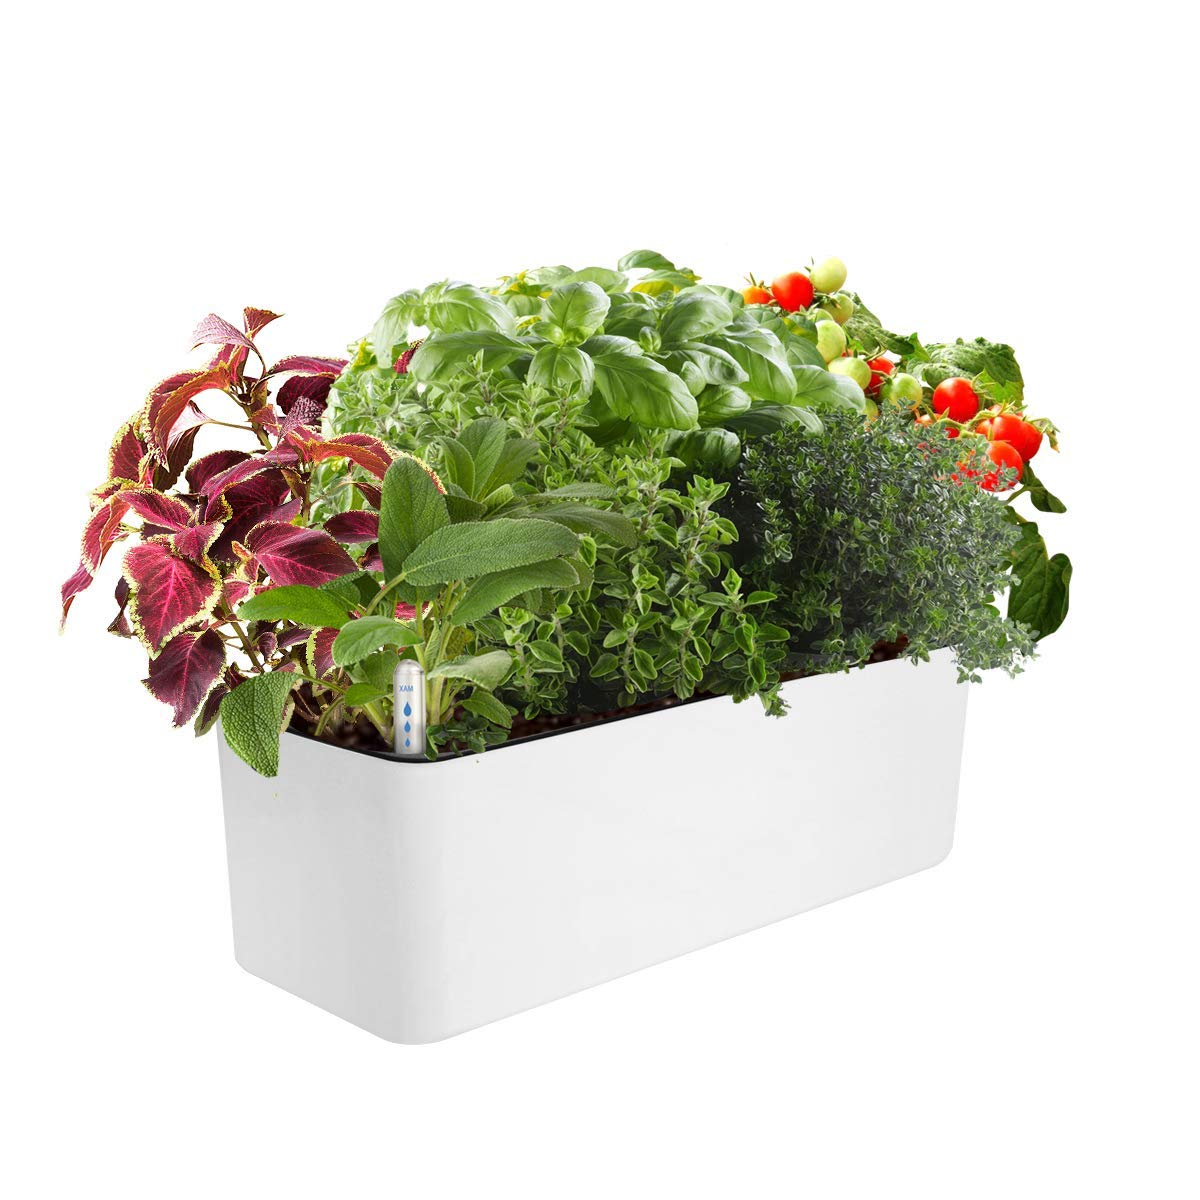 J&C Self Watering Planter, Window Gardening Box, 16x 5.5 Inch, Indoor Home Garden, Modern Decorative Planter Pot for All Indoor Plants, Rectangle, White (Plants Not Included)